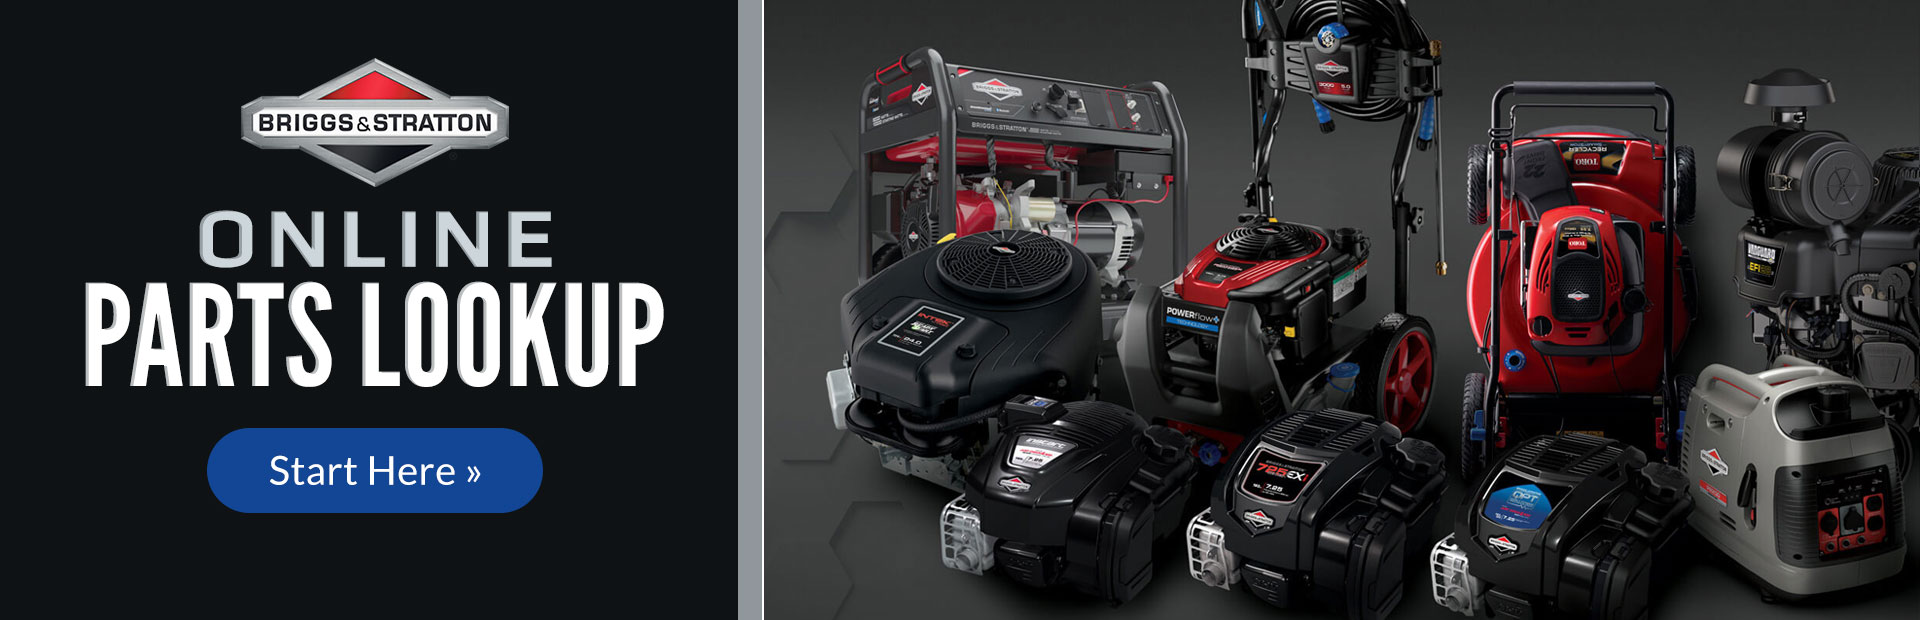 Briggs & Stratton Parts Lookup: Click here to begin your search.